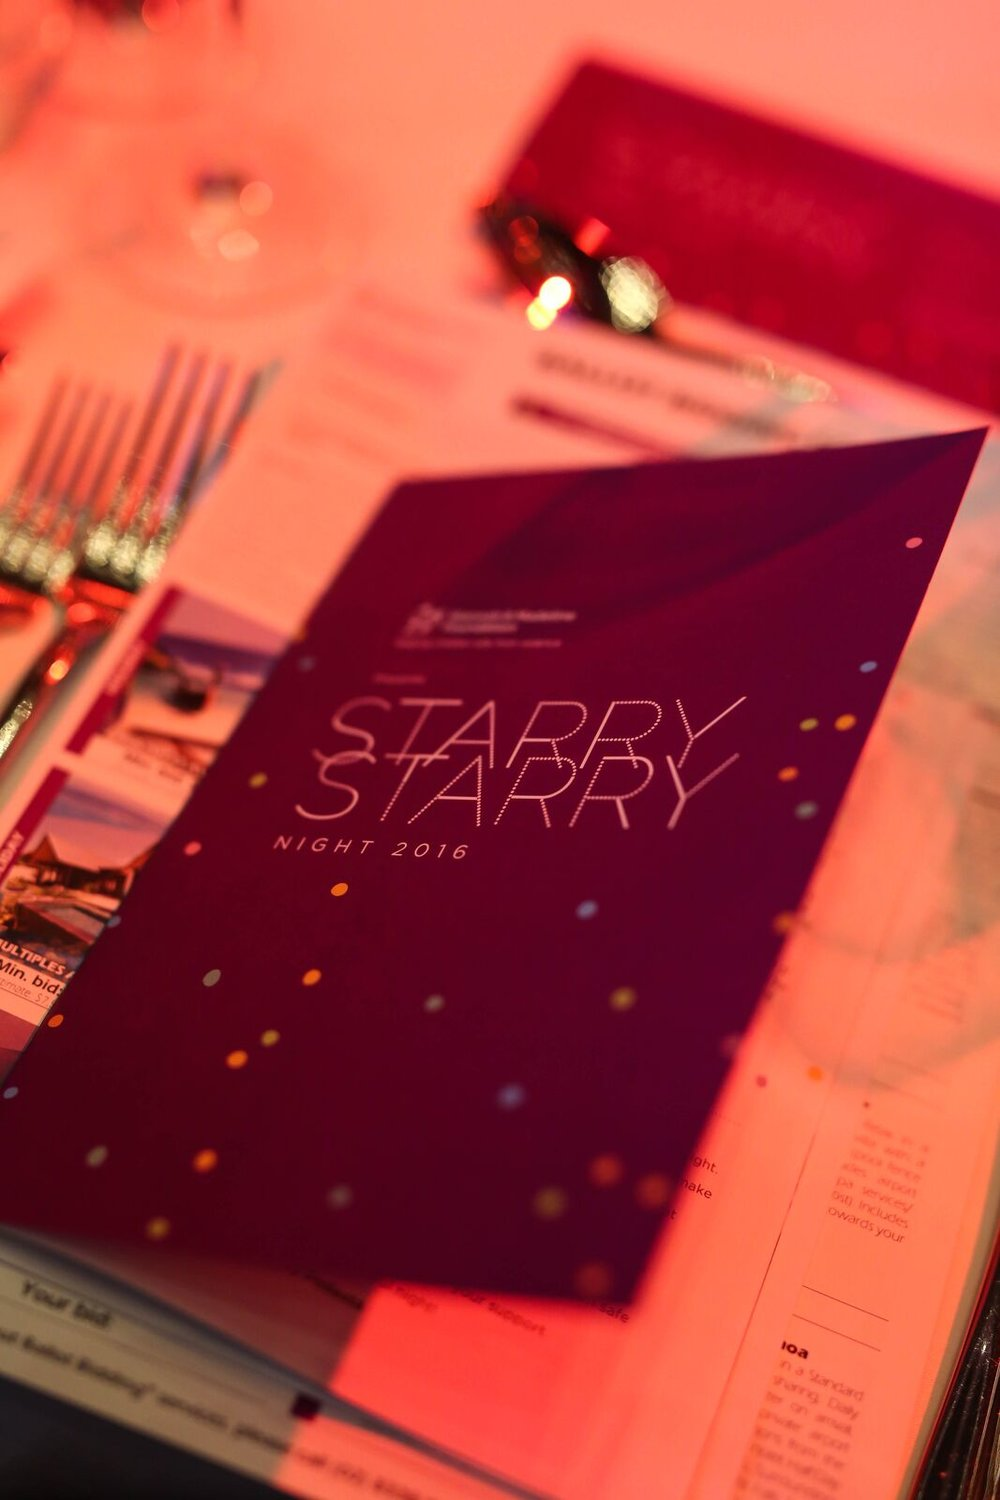 starry-starry-night-2016-program.jpg